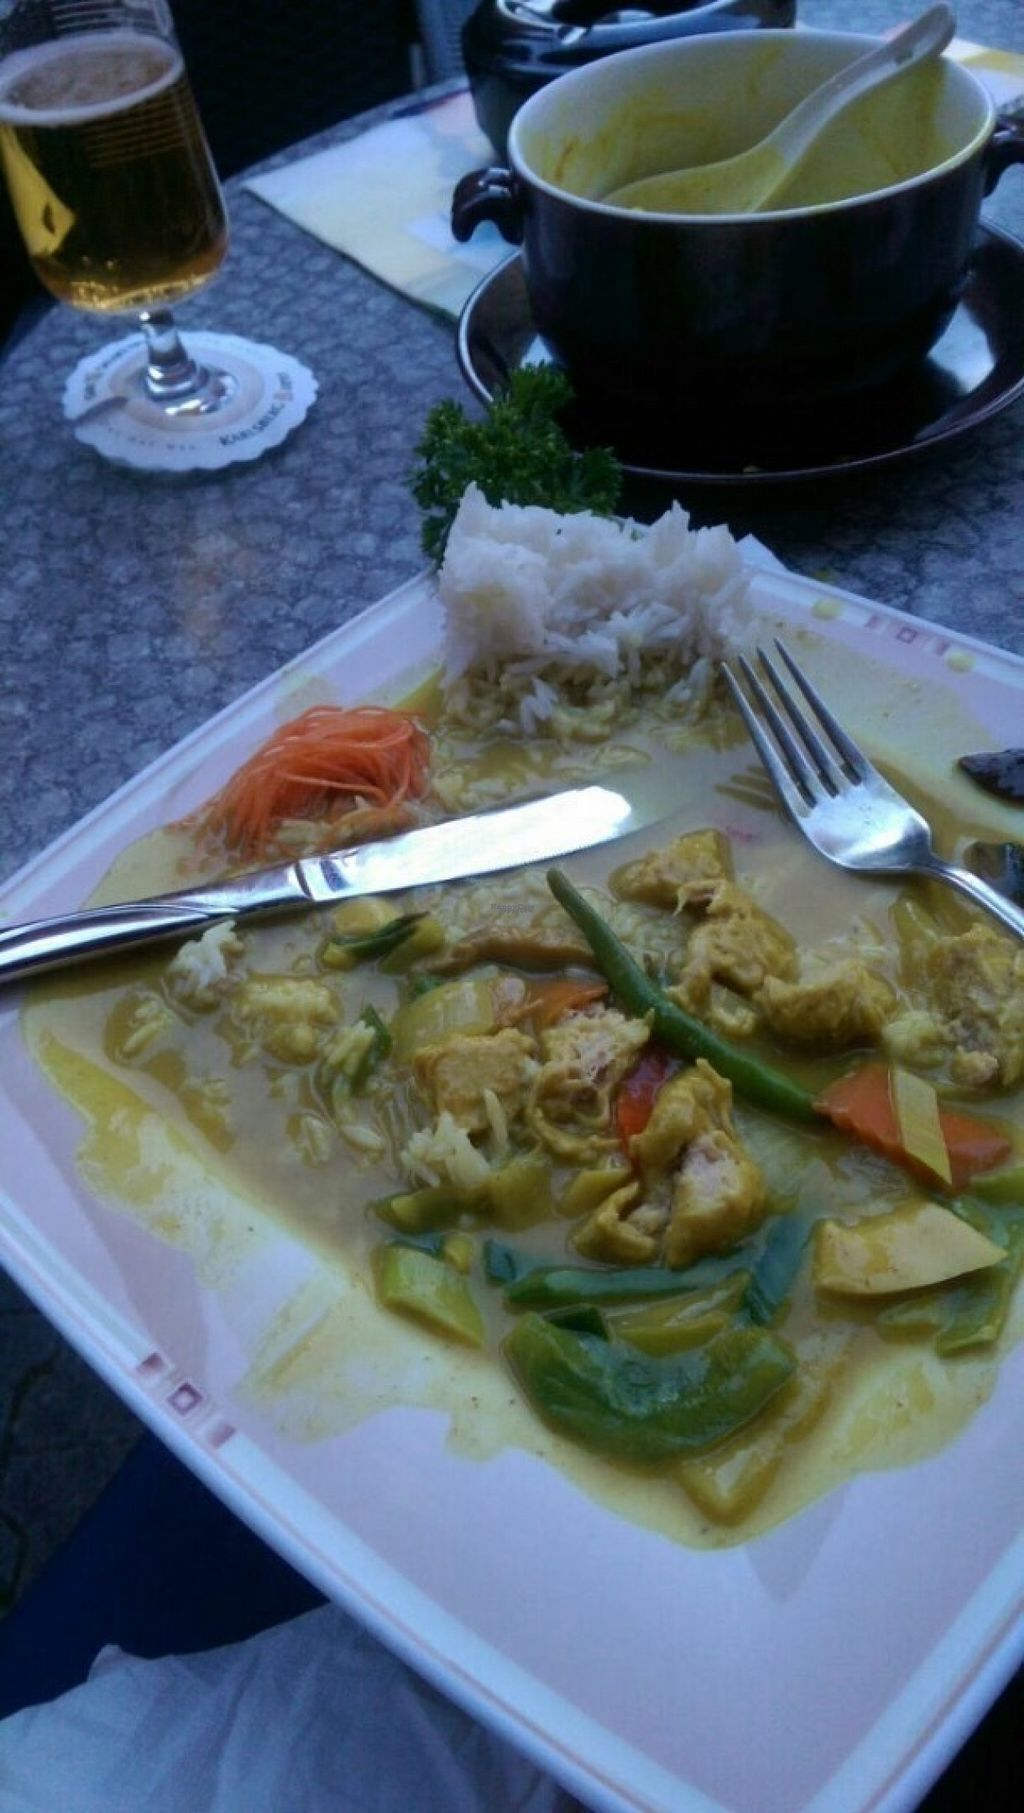 """Photo of Ha Long  by <a href=""""/members/profile/happyowl"""">happyowl</a> <br/>Rice with vegan chicken in curry sauce <br/> August 13, 2016  - <a href='/contact/abuse/image/56030/168289'>Report</a>"""